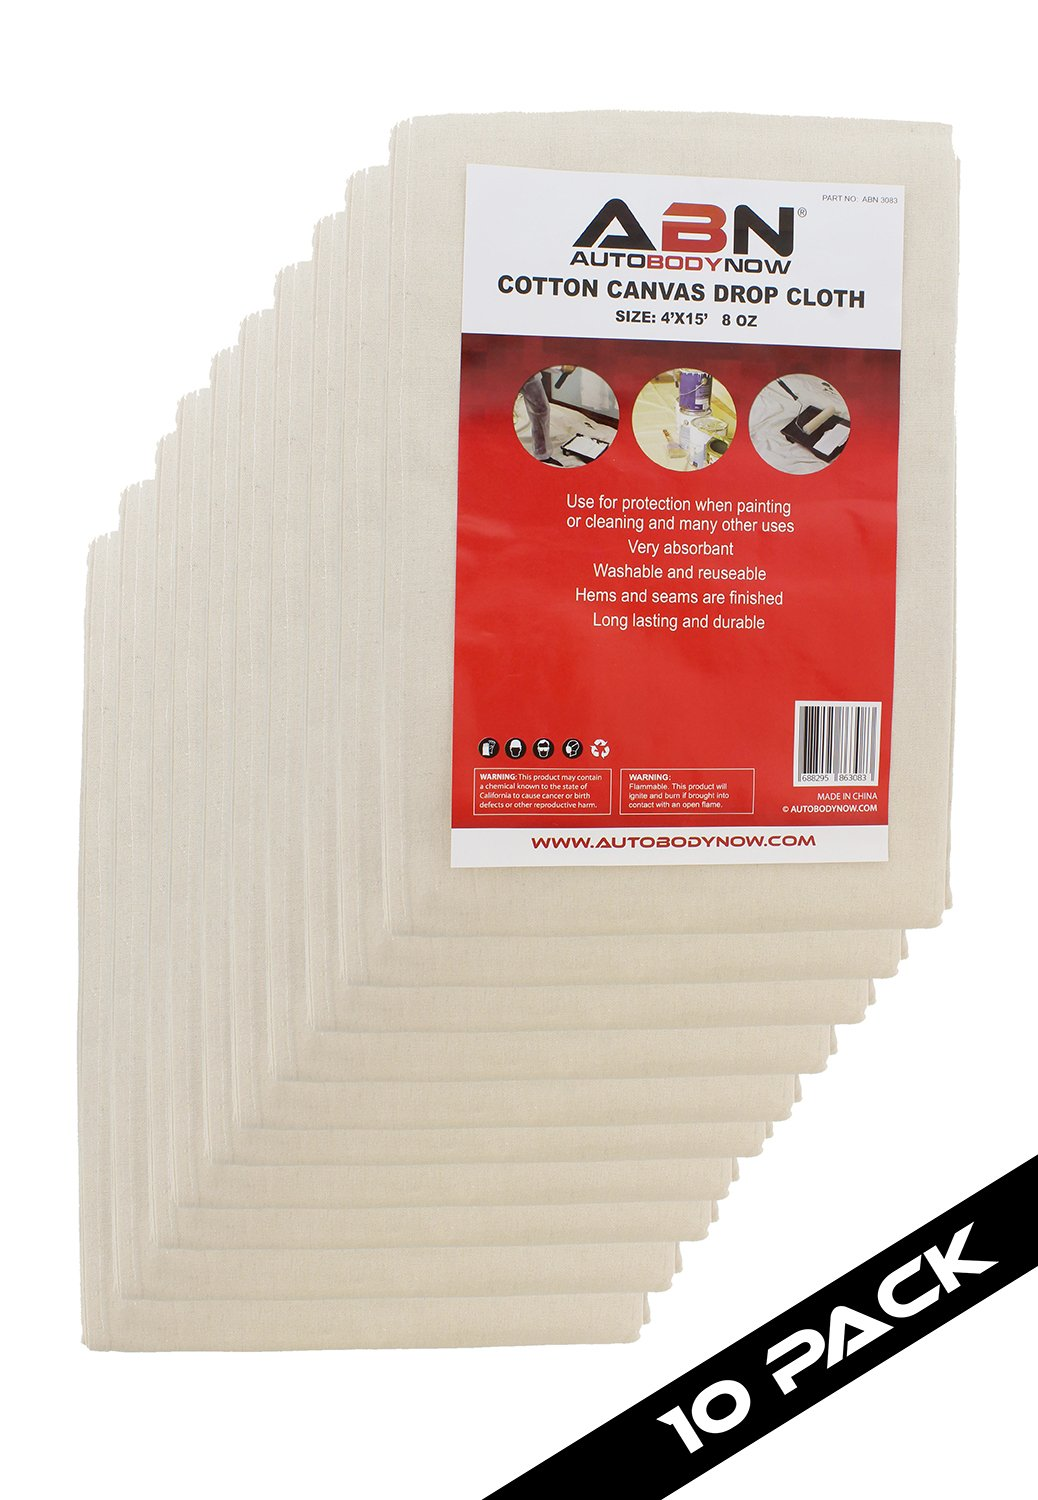 ABN Painters Cotton Canvas Paint Drop Cloth, Large 4' x 15' Foot 10-PACK – Protective White Tarp for Painting, Auto, Furniture